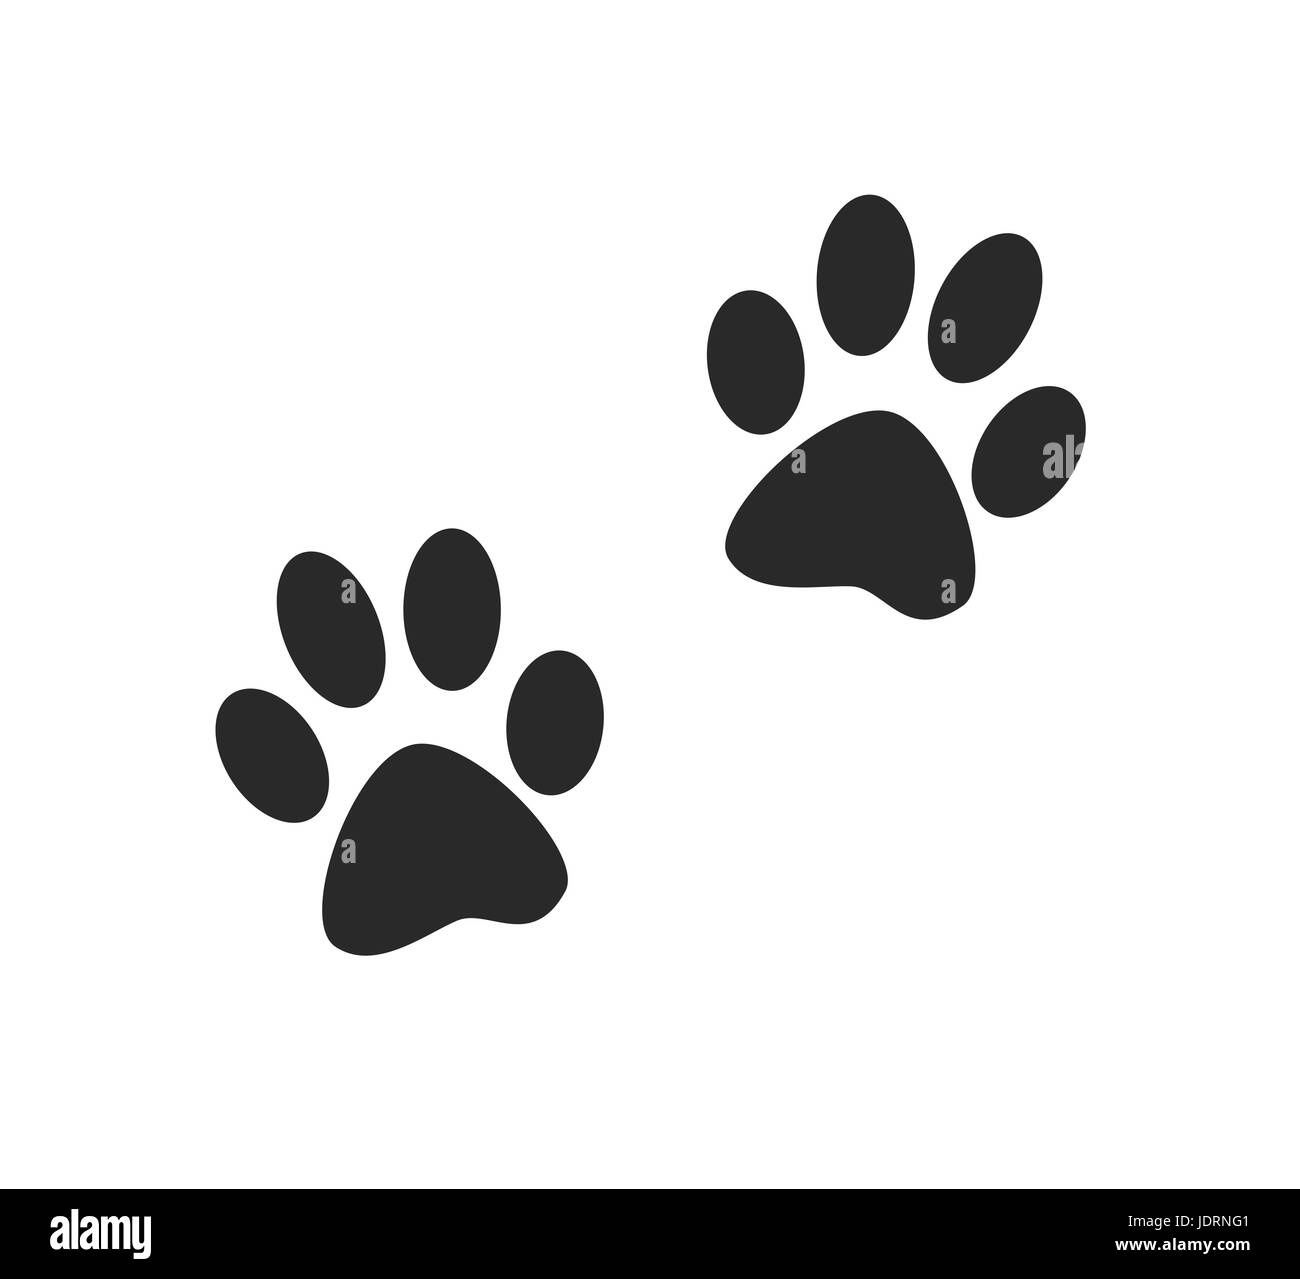 Cat Paw Print High Resolution Stock Photography And Images Alamy